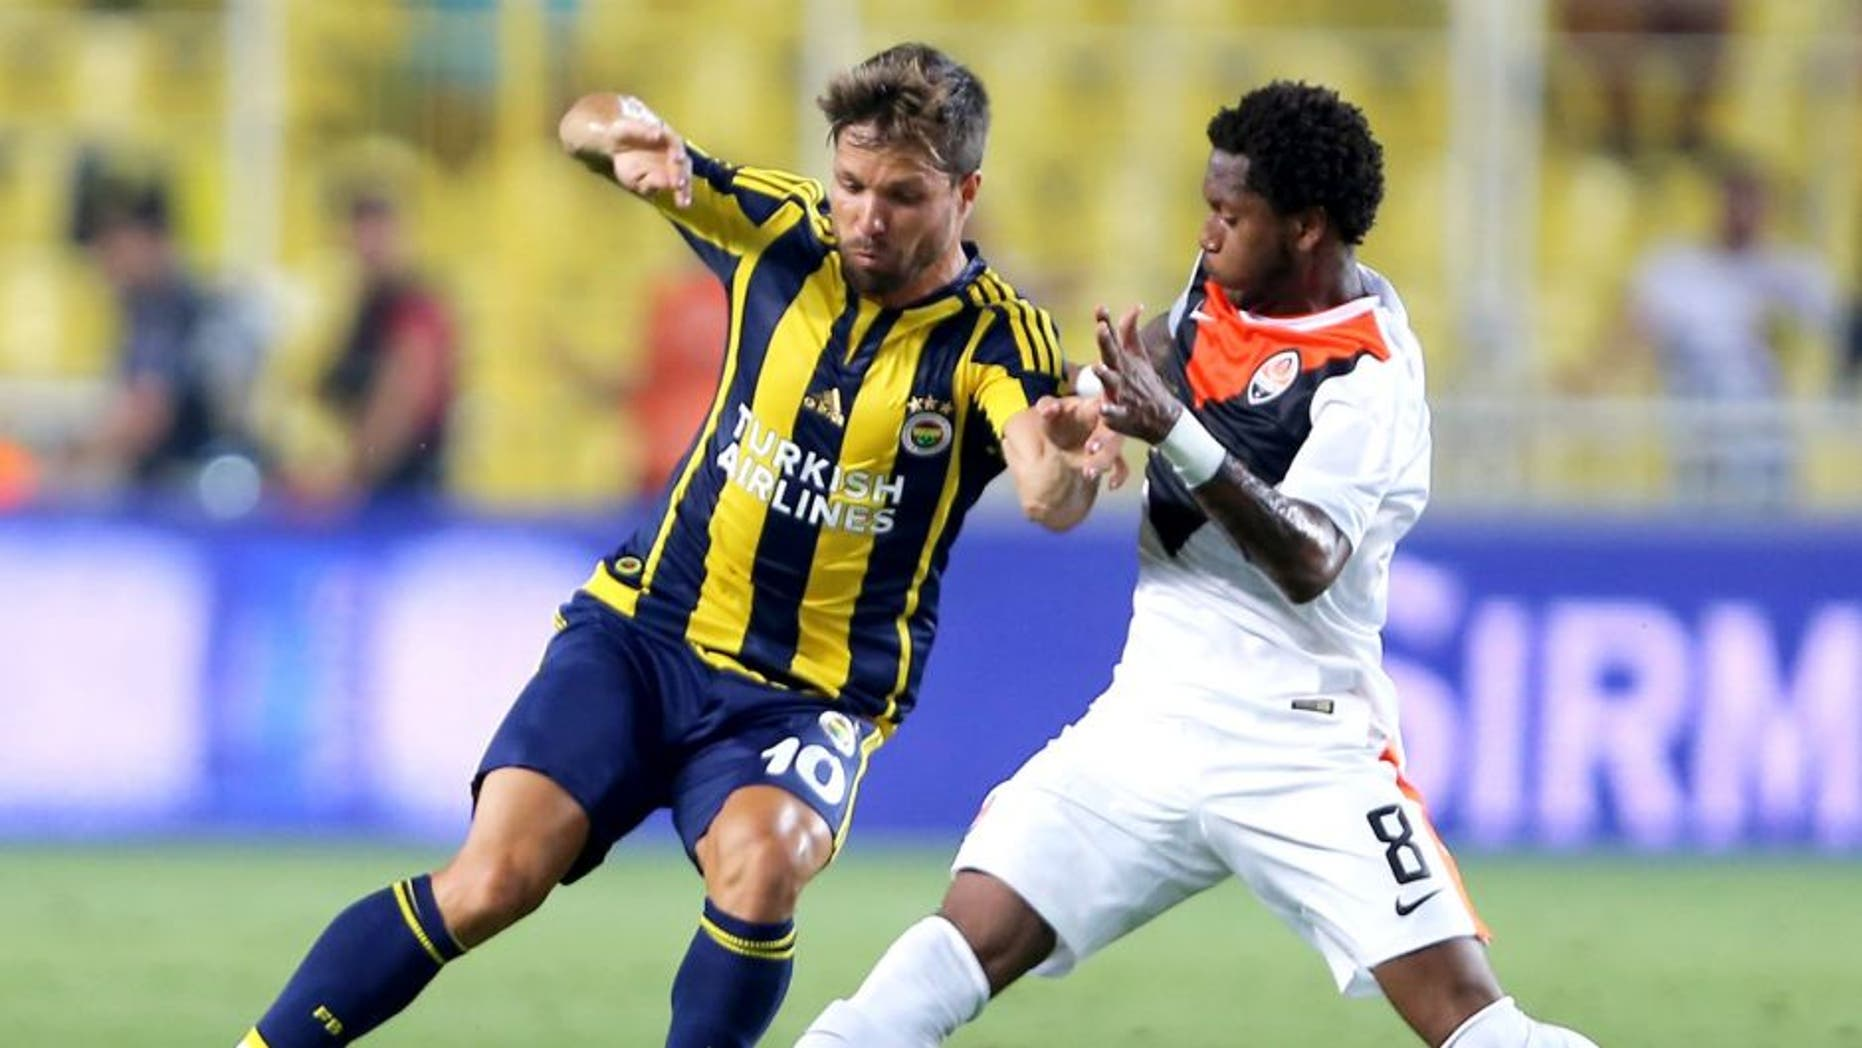 ISTANBUL, TURKEY - JULY 28: Fred of Shaktar Donetsk rides the ball past Fenerbahce's Souza during UEFA Champions League Third Qualifying Round 1st Leg match betweeen Fenerbahce v Shakhtar Donetsk at Sukru Saracoglu Stadium on July 28, 2015 in Istanbul, Turkey. (Photo by Burak Kara/Getty Images)